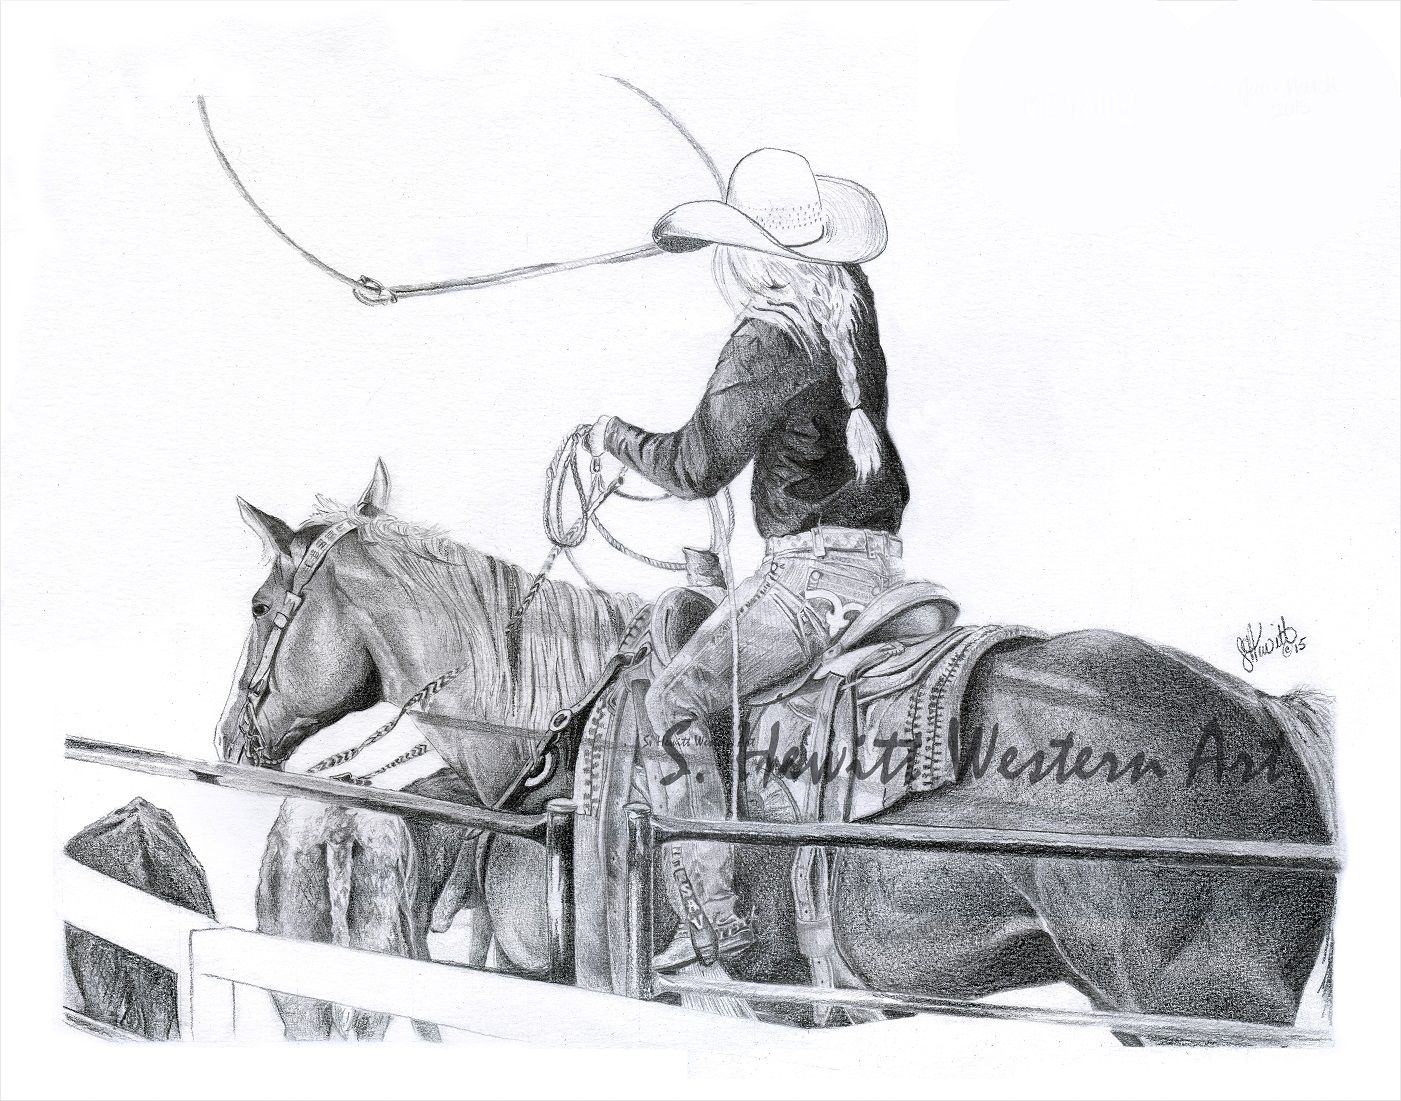 Western pencil art visit s hewitt western art on facebook